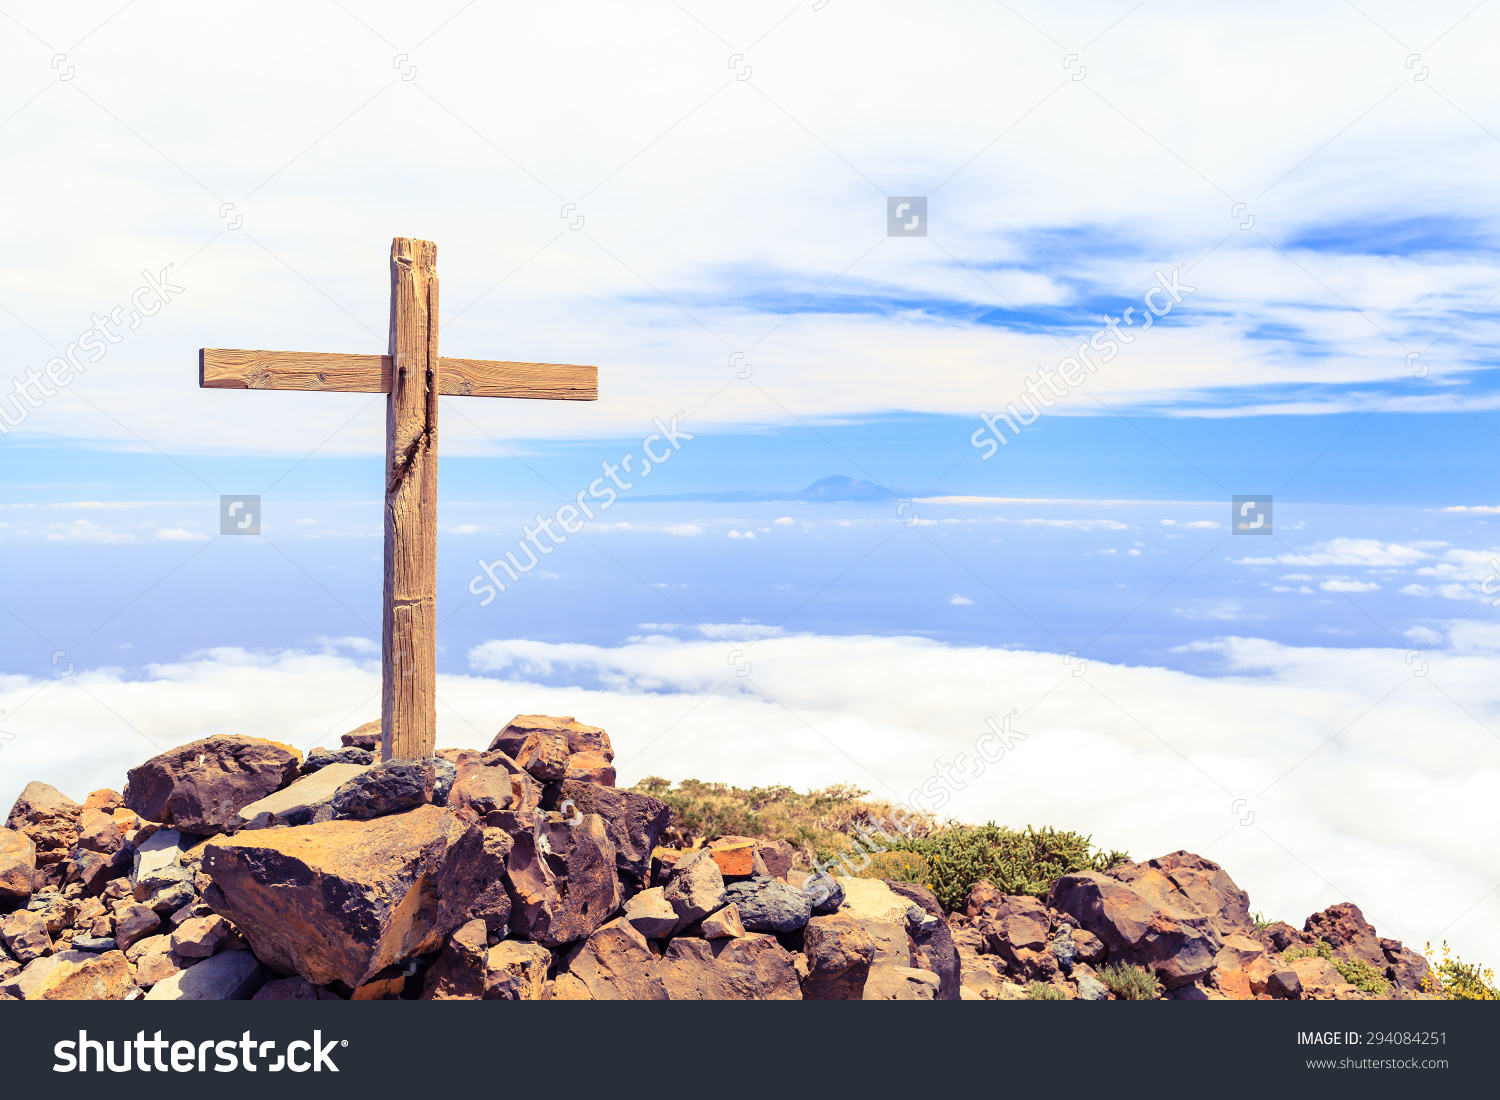 Christian Wooden Cross On Mountain Top Stock Photo 294084251.